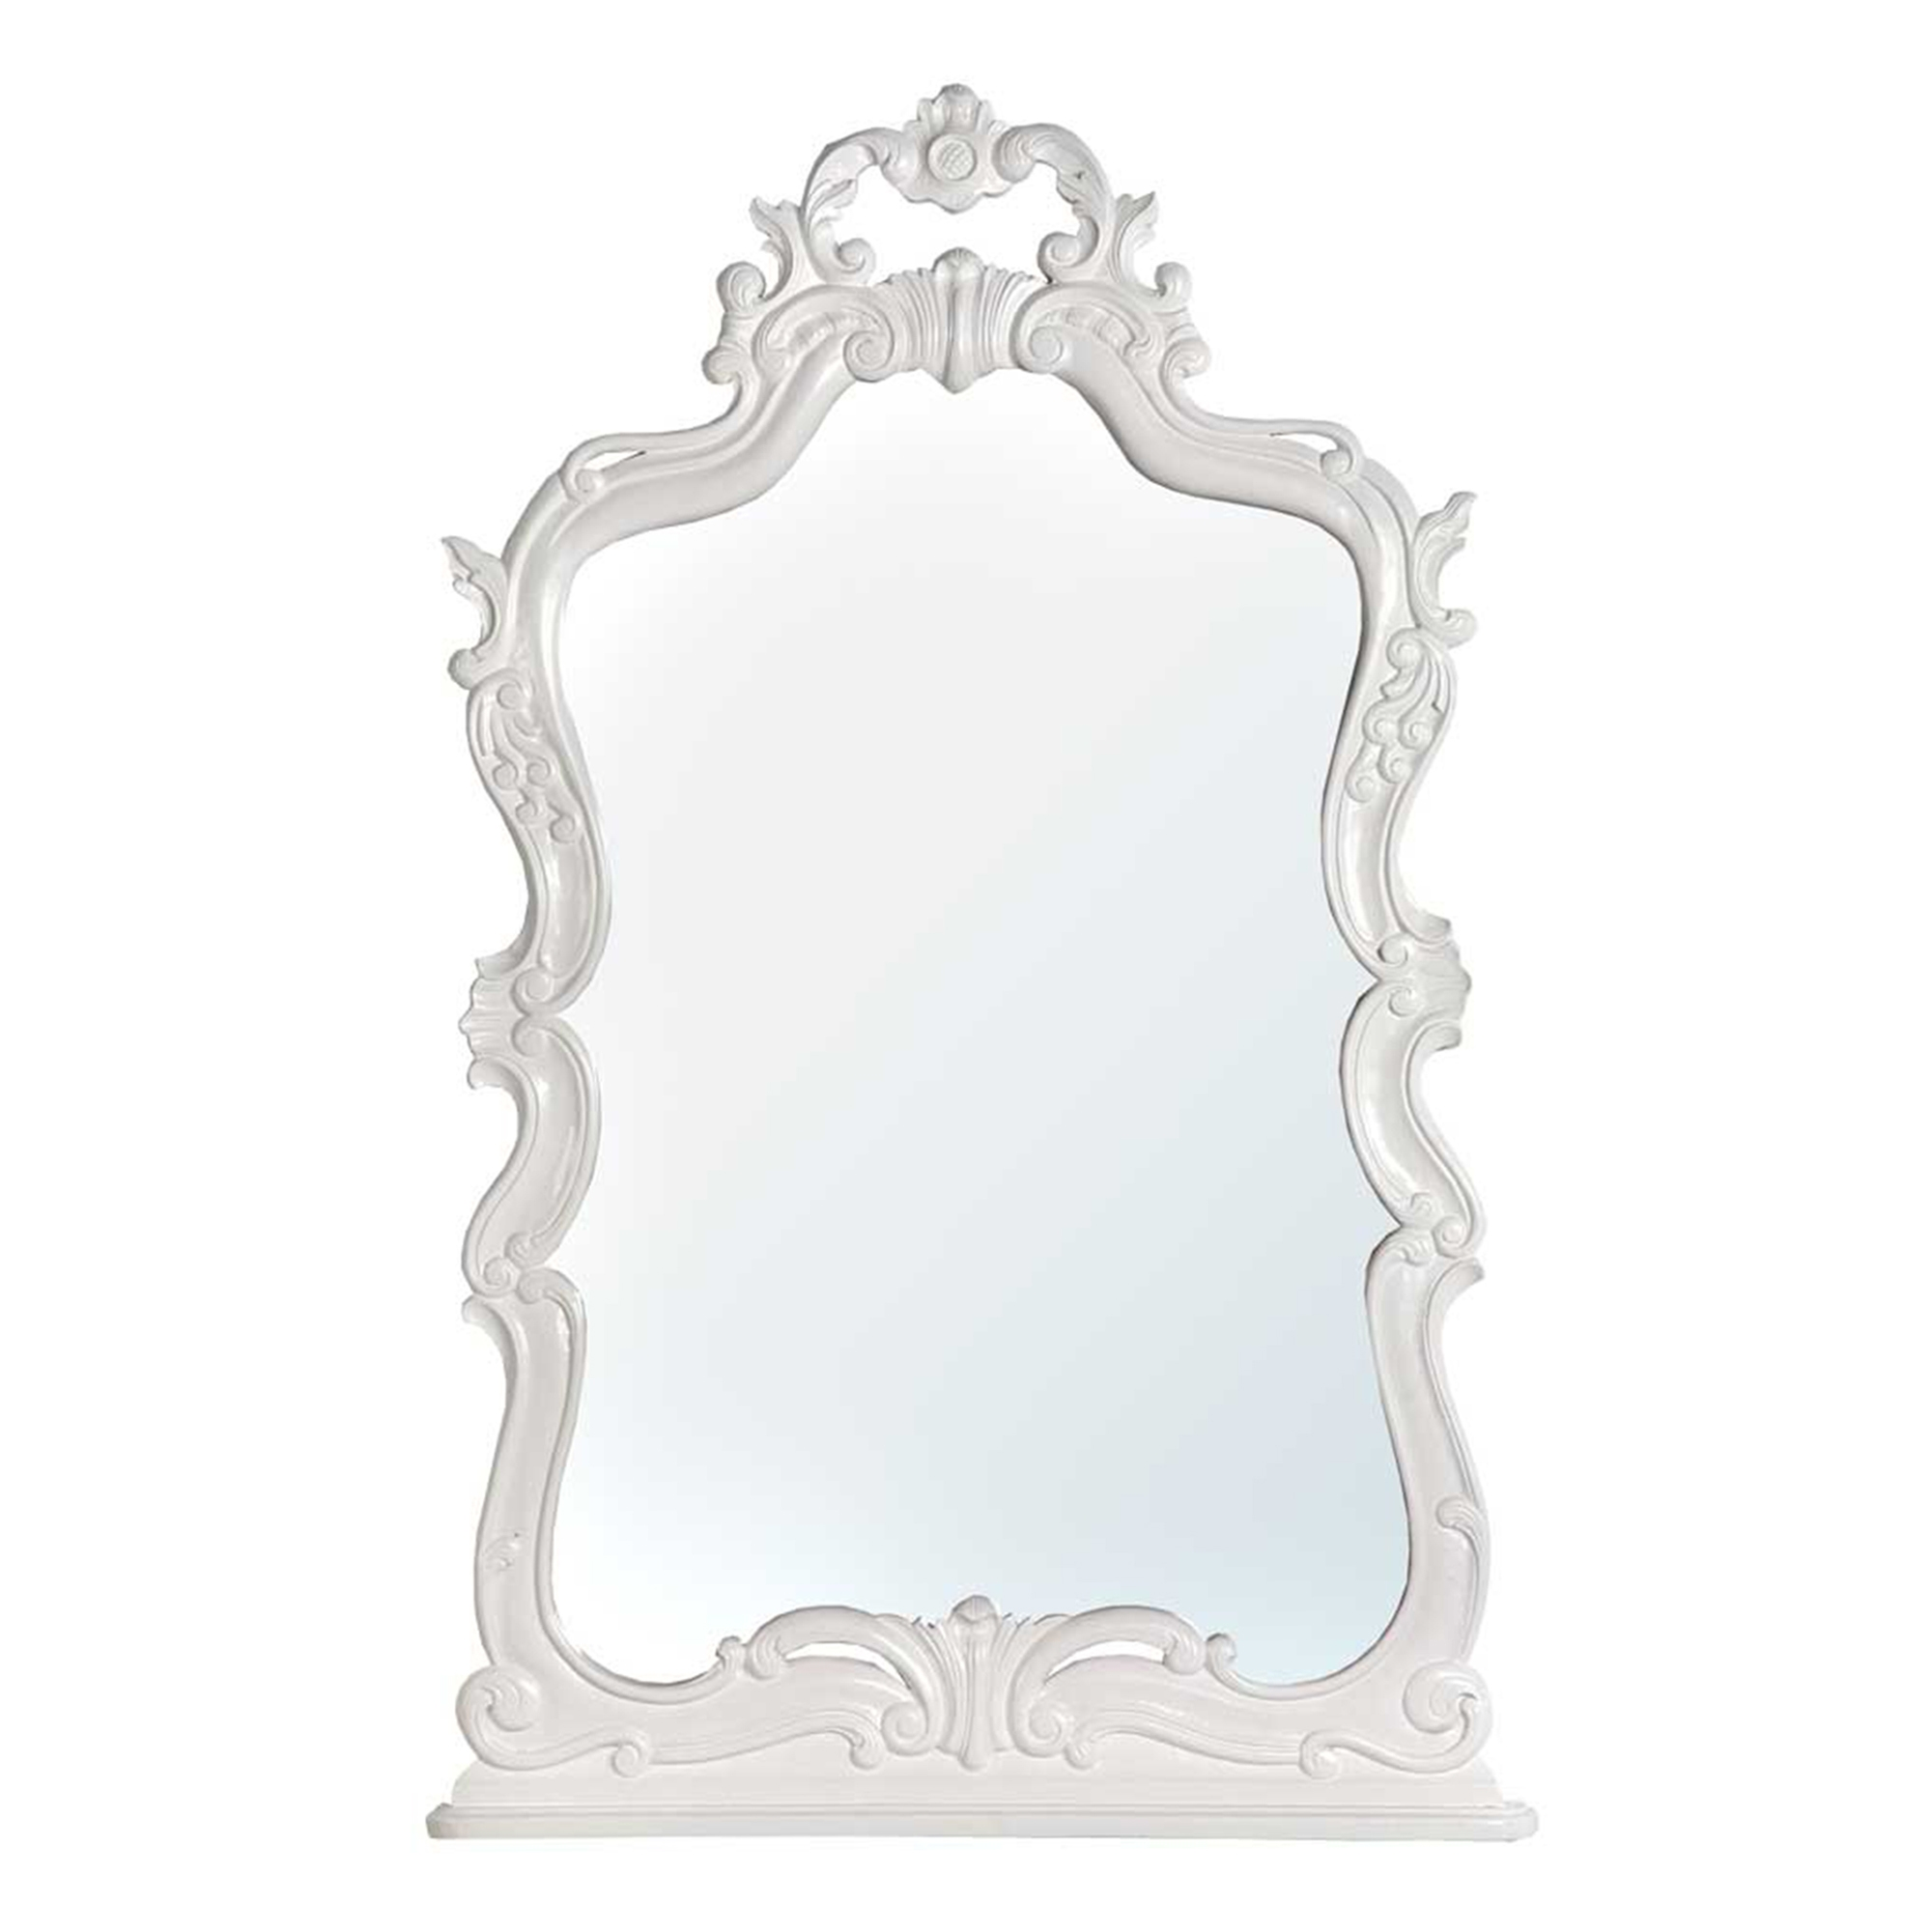 Belle Chambres Mirror - White